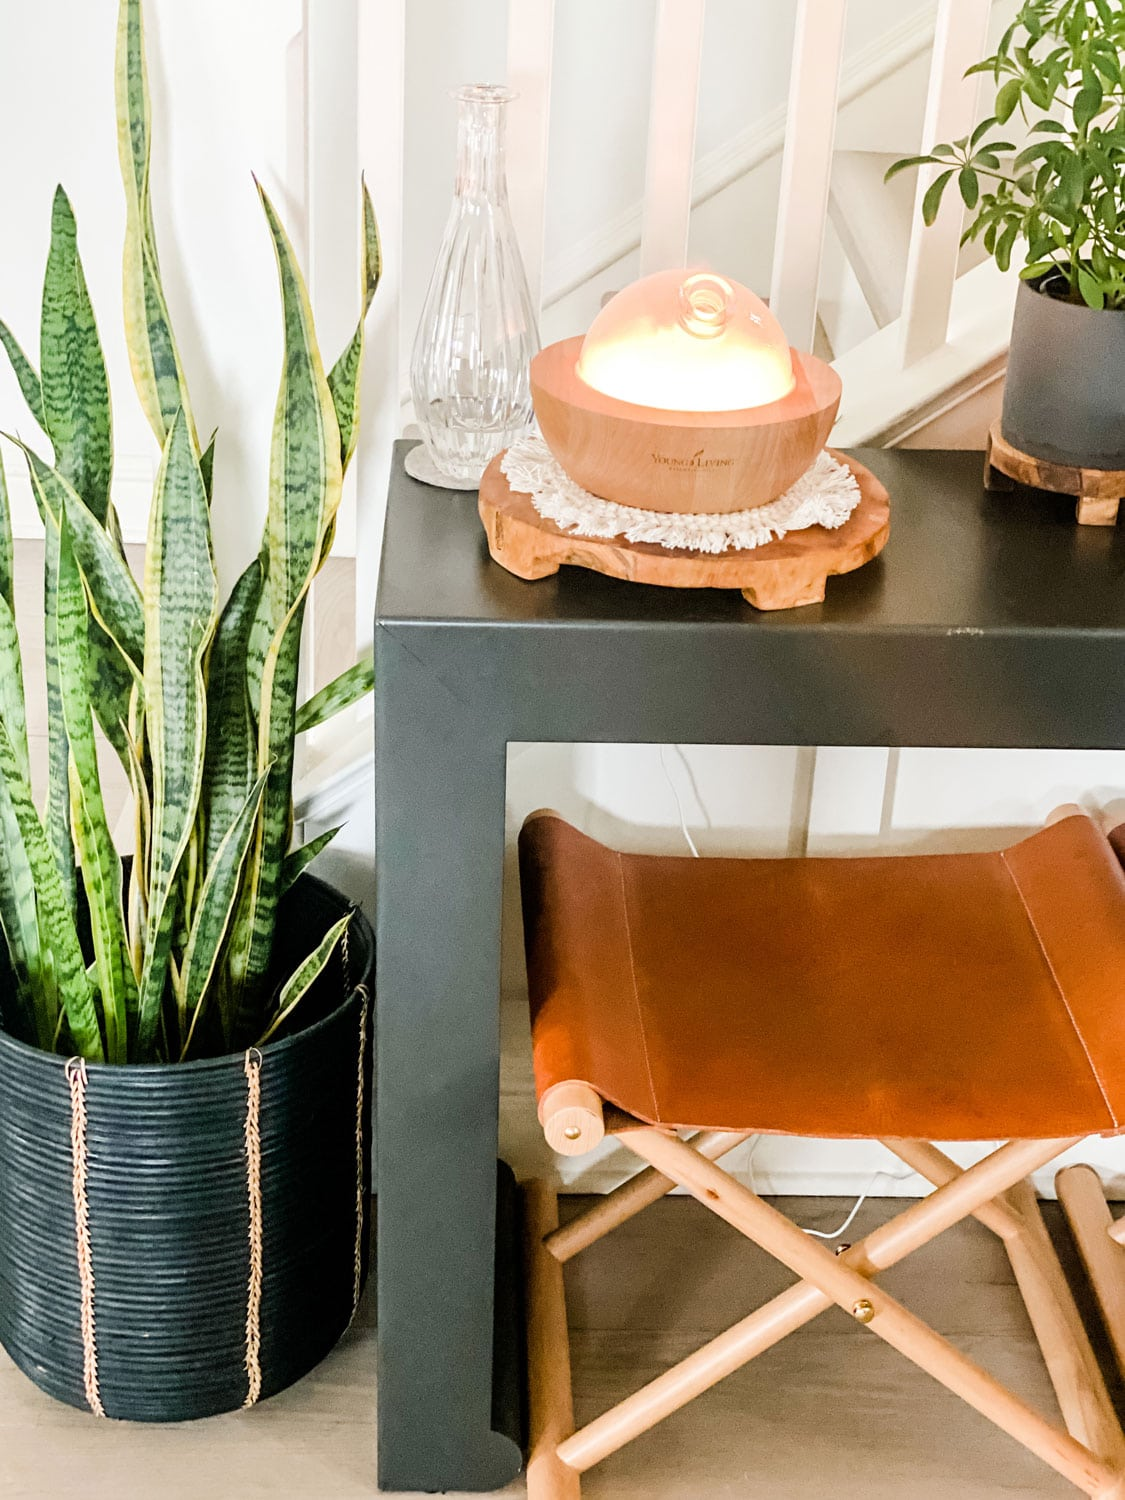 diffuser on wood trivet with snake plant and leather stool